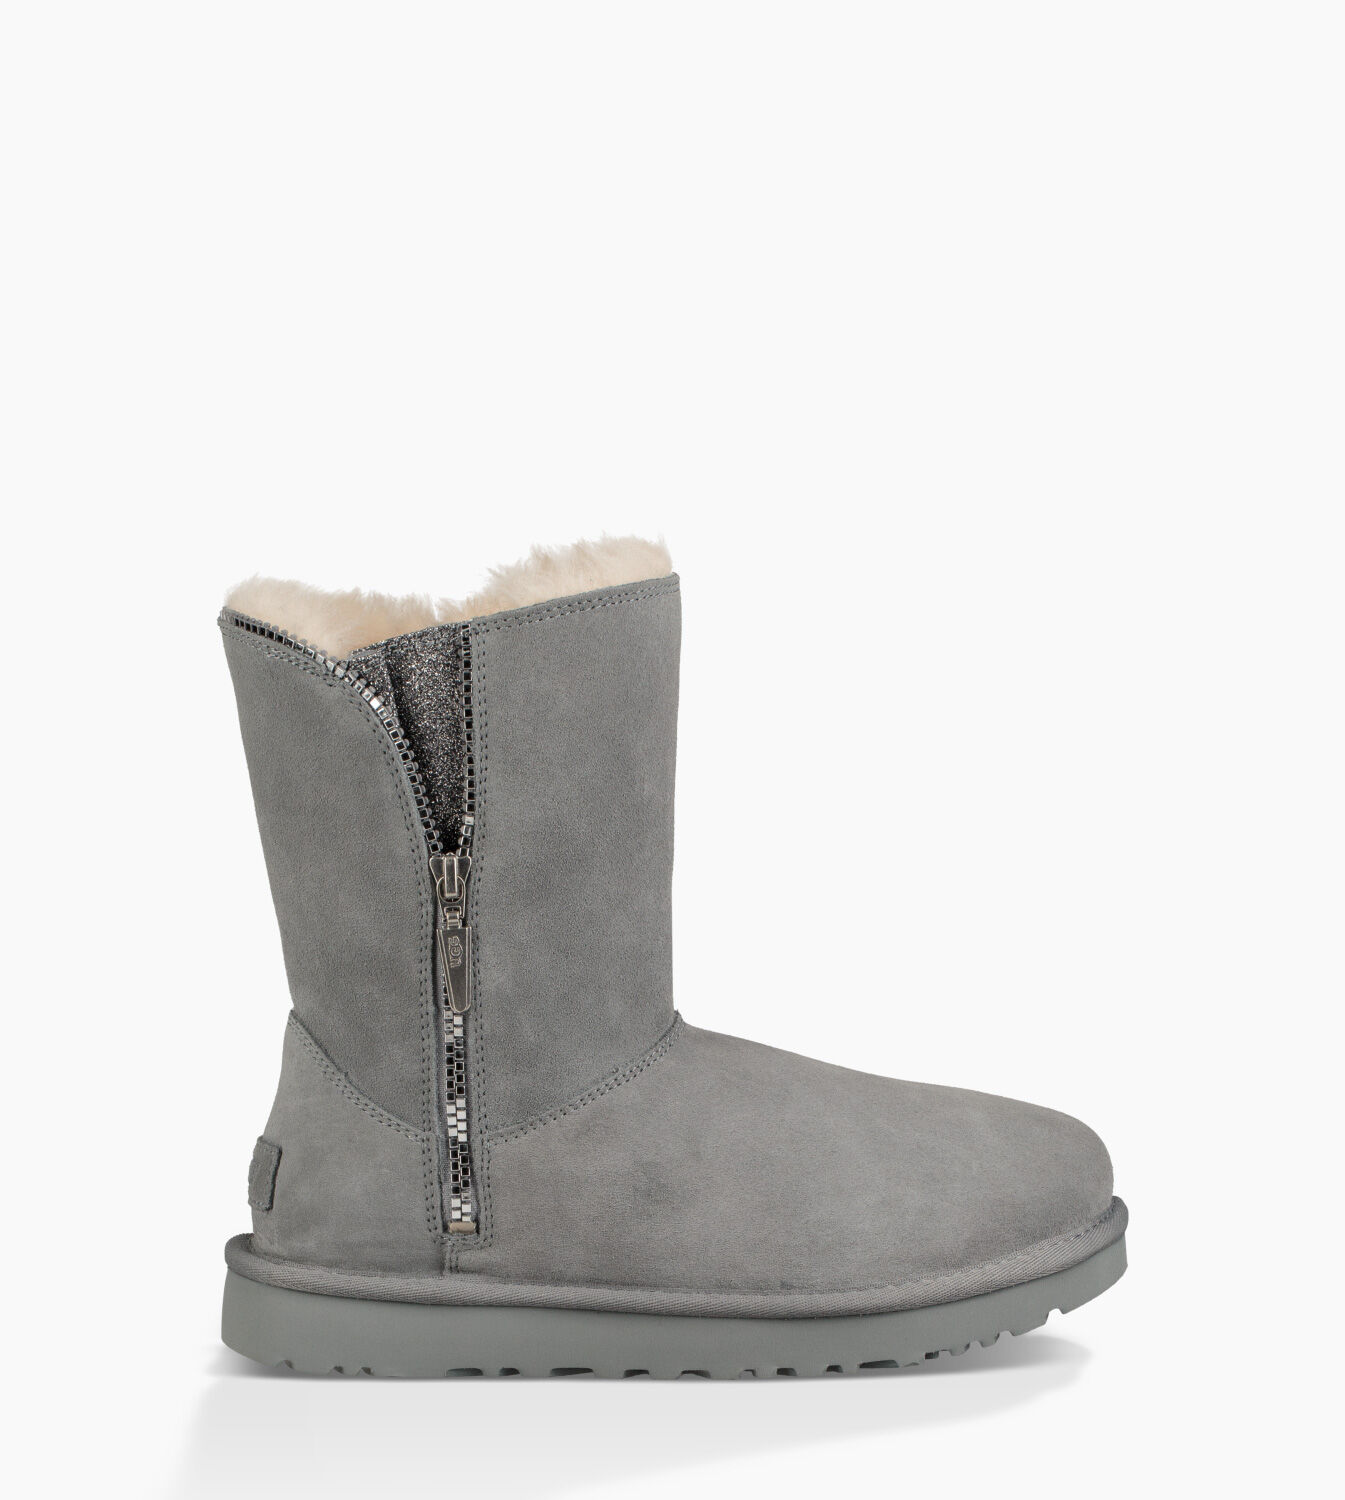 Discount Free Shipping Free Shipping For Nice UGG Marice Geyser women's Snow boots in Comfortable Cheap Online erCpys0bV